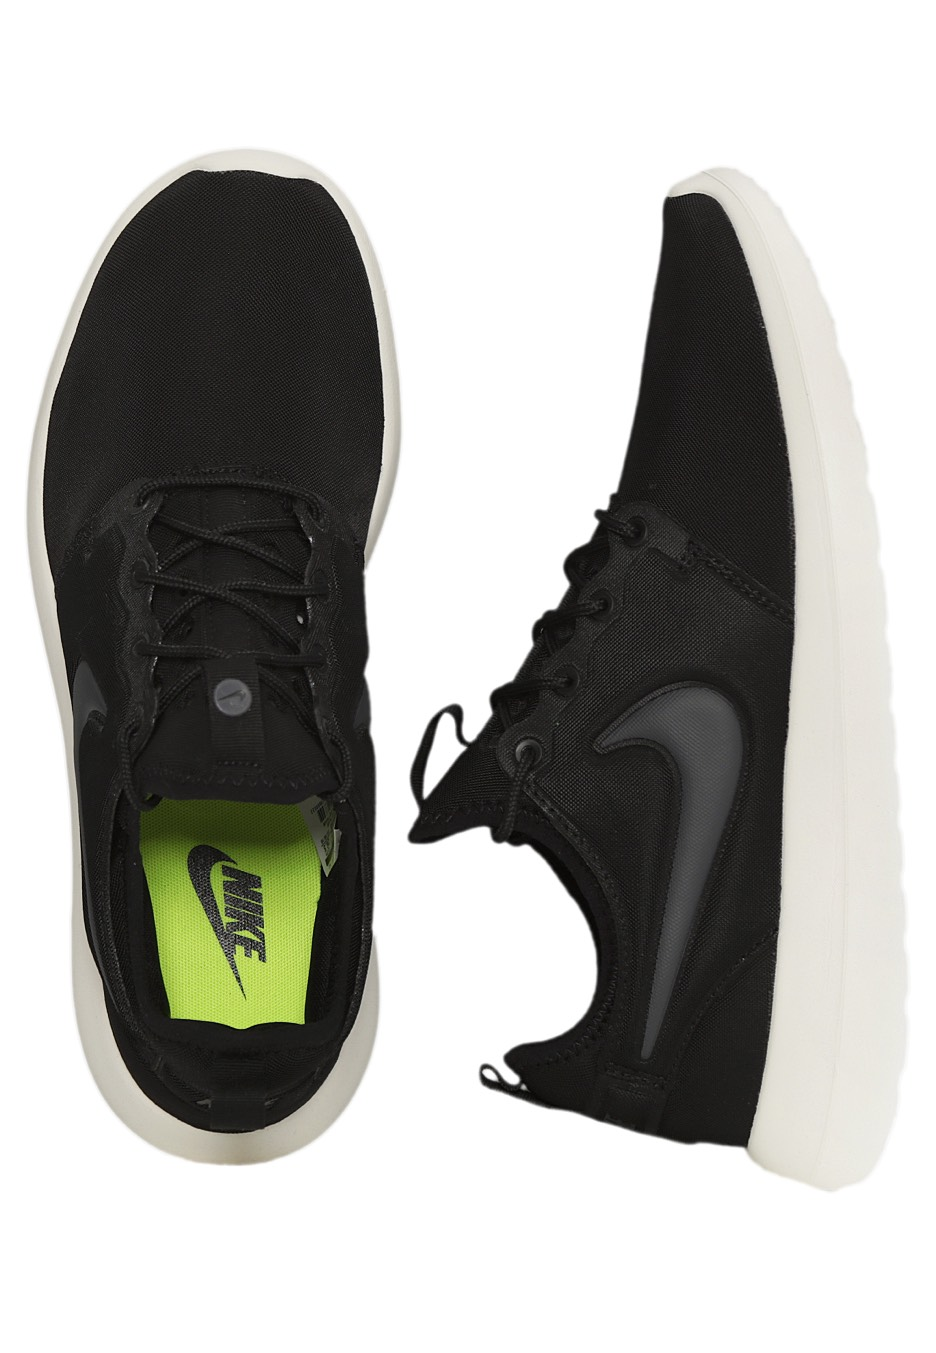 Nike Roshe Two Men 's Running Shoes Black / Black / Black Eastbay